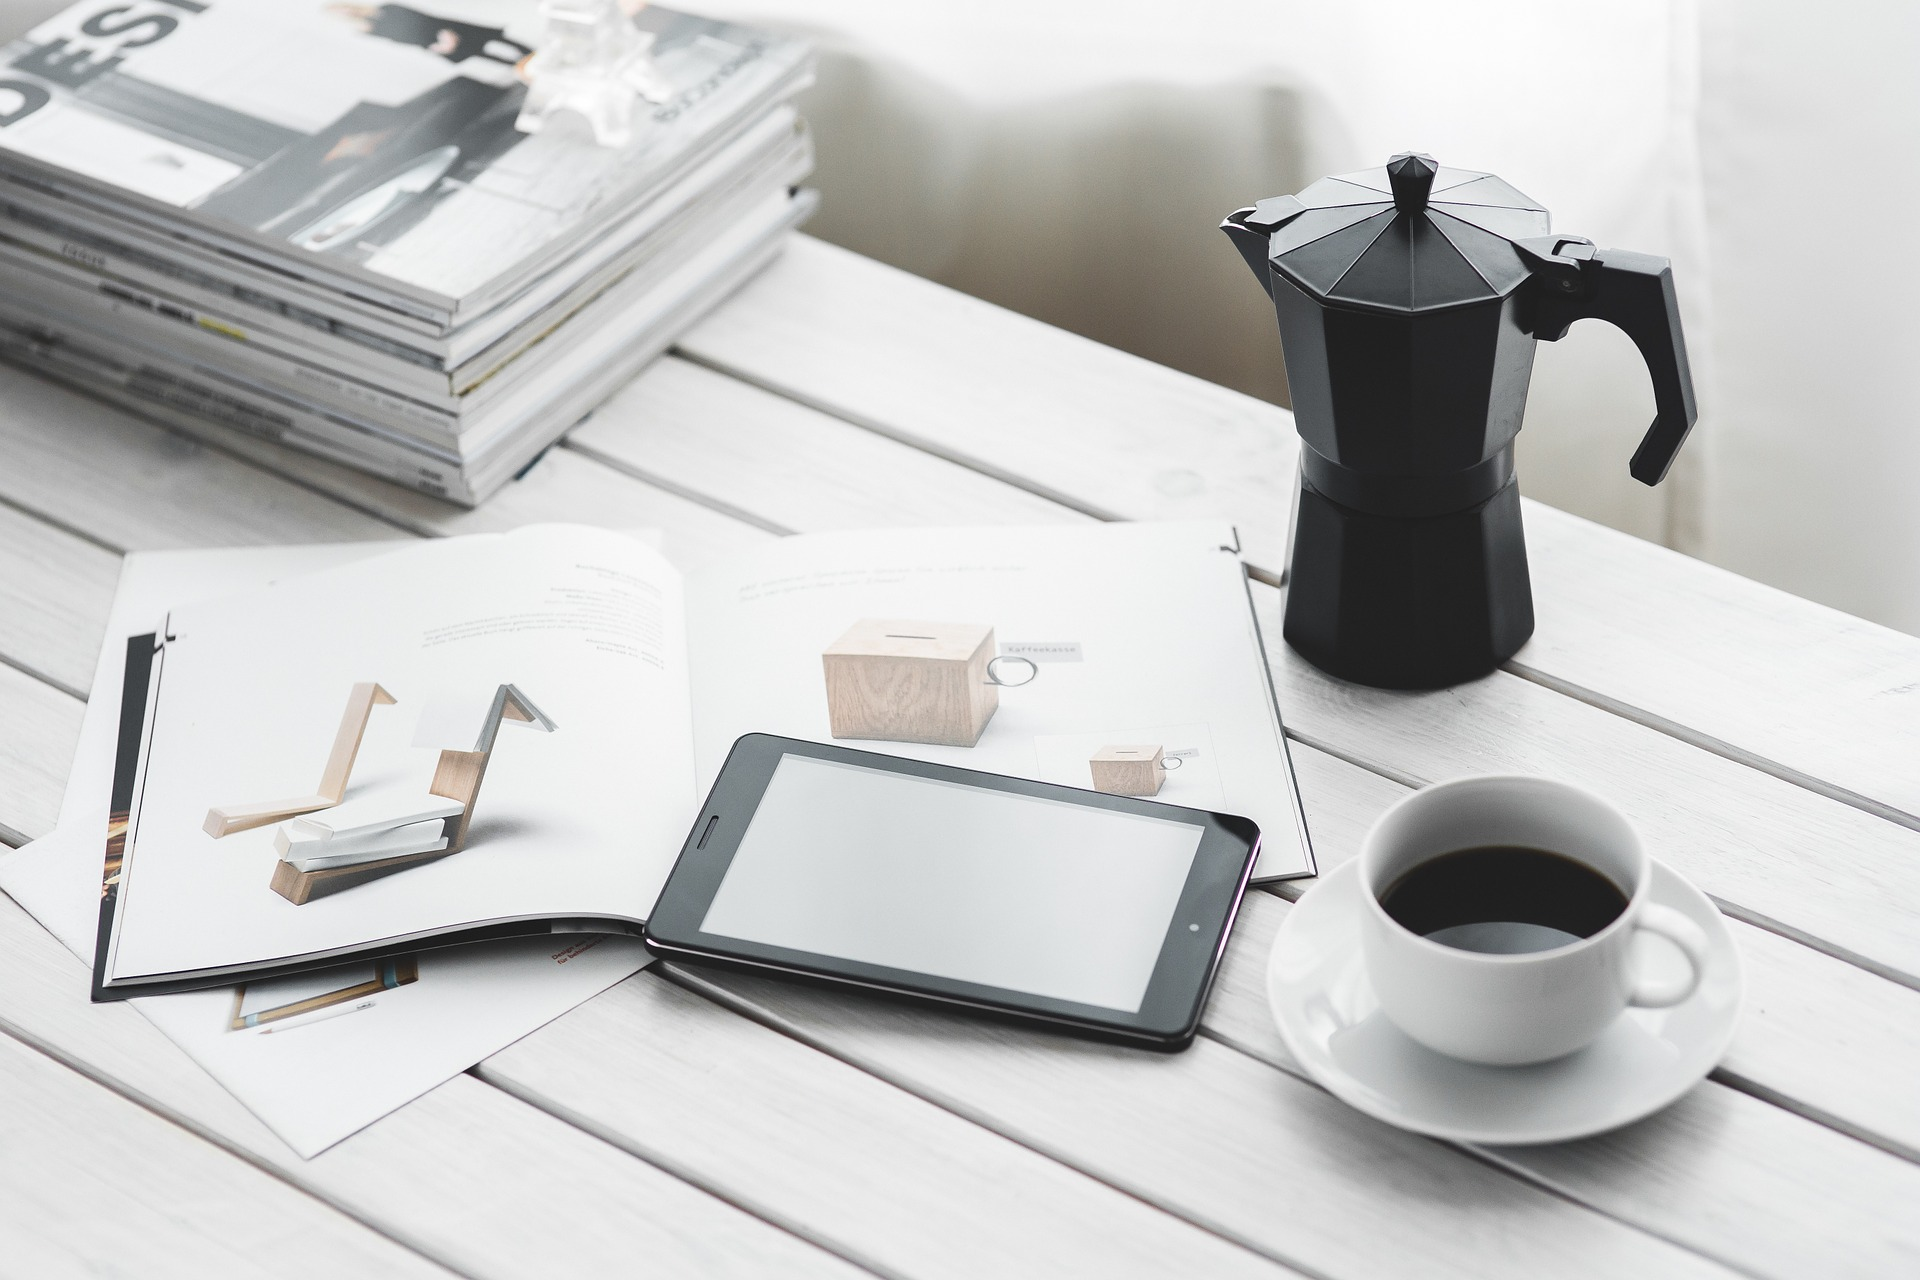 Cup of coffee next to a mobile